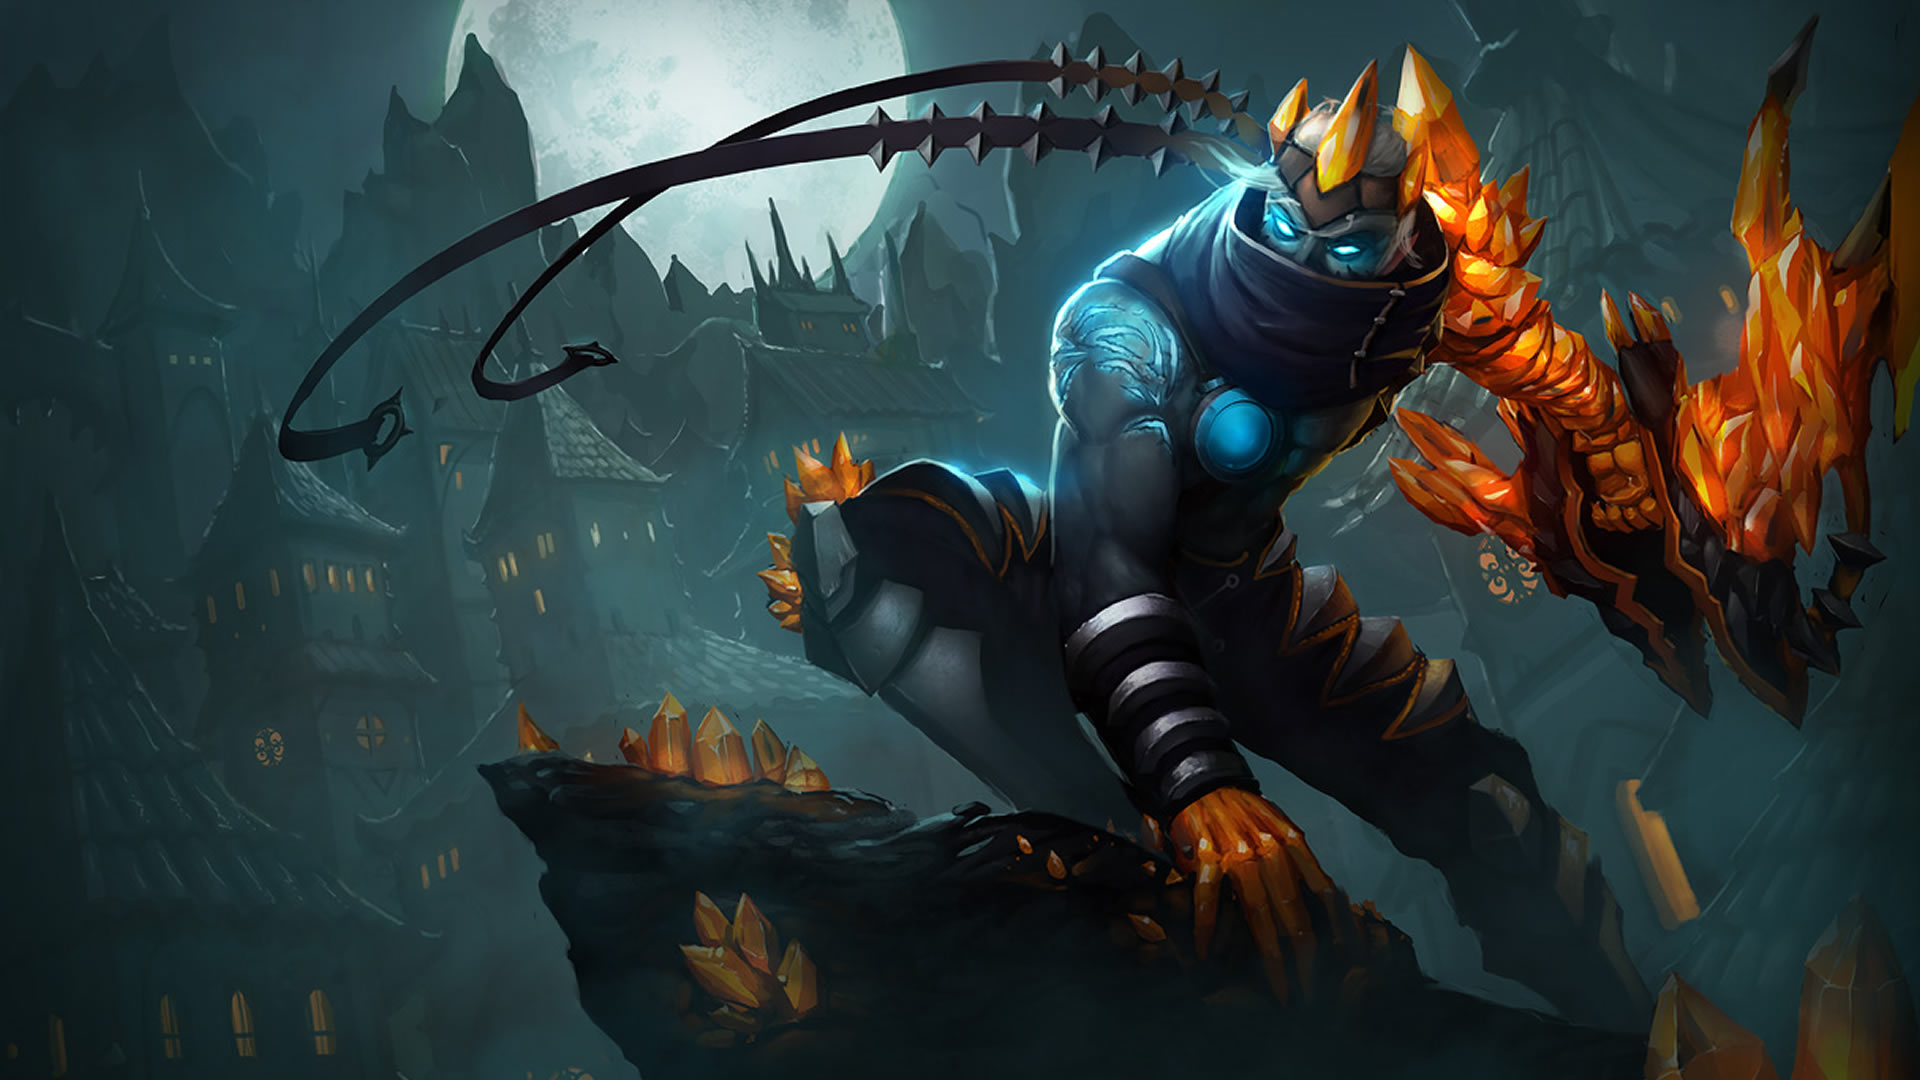 Blight Crystal Varus wallpaper